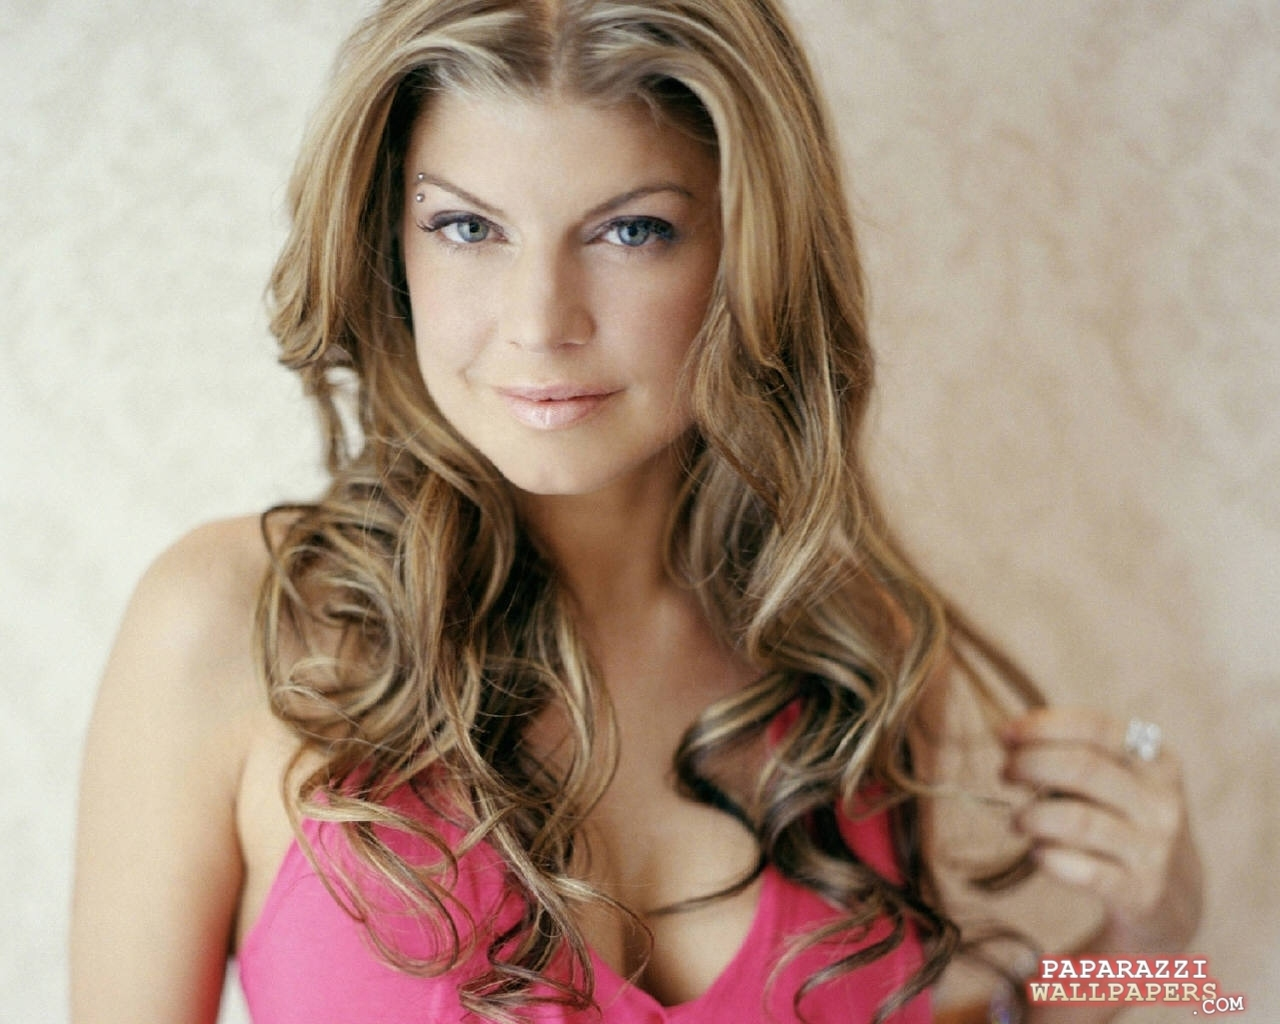 Fergie images Fergie the dutchess HD wallpaper and background photos ... Fergie